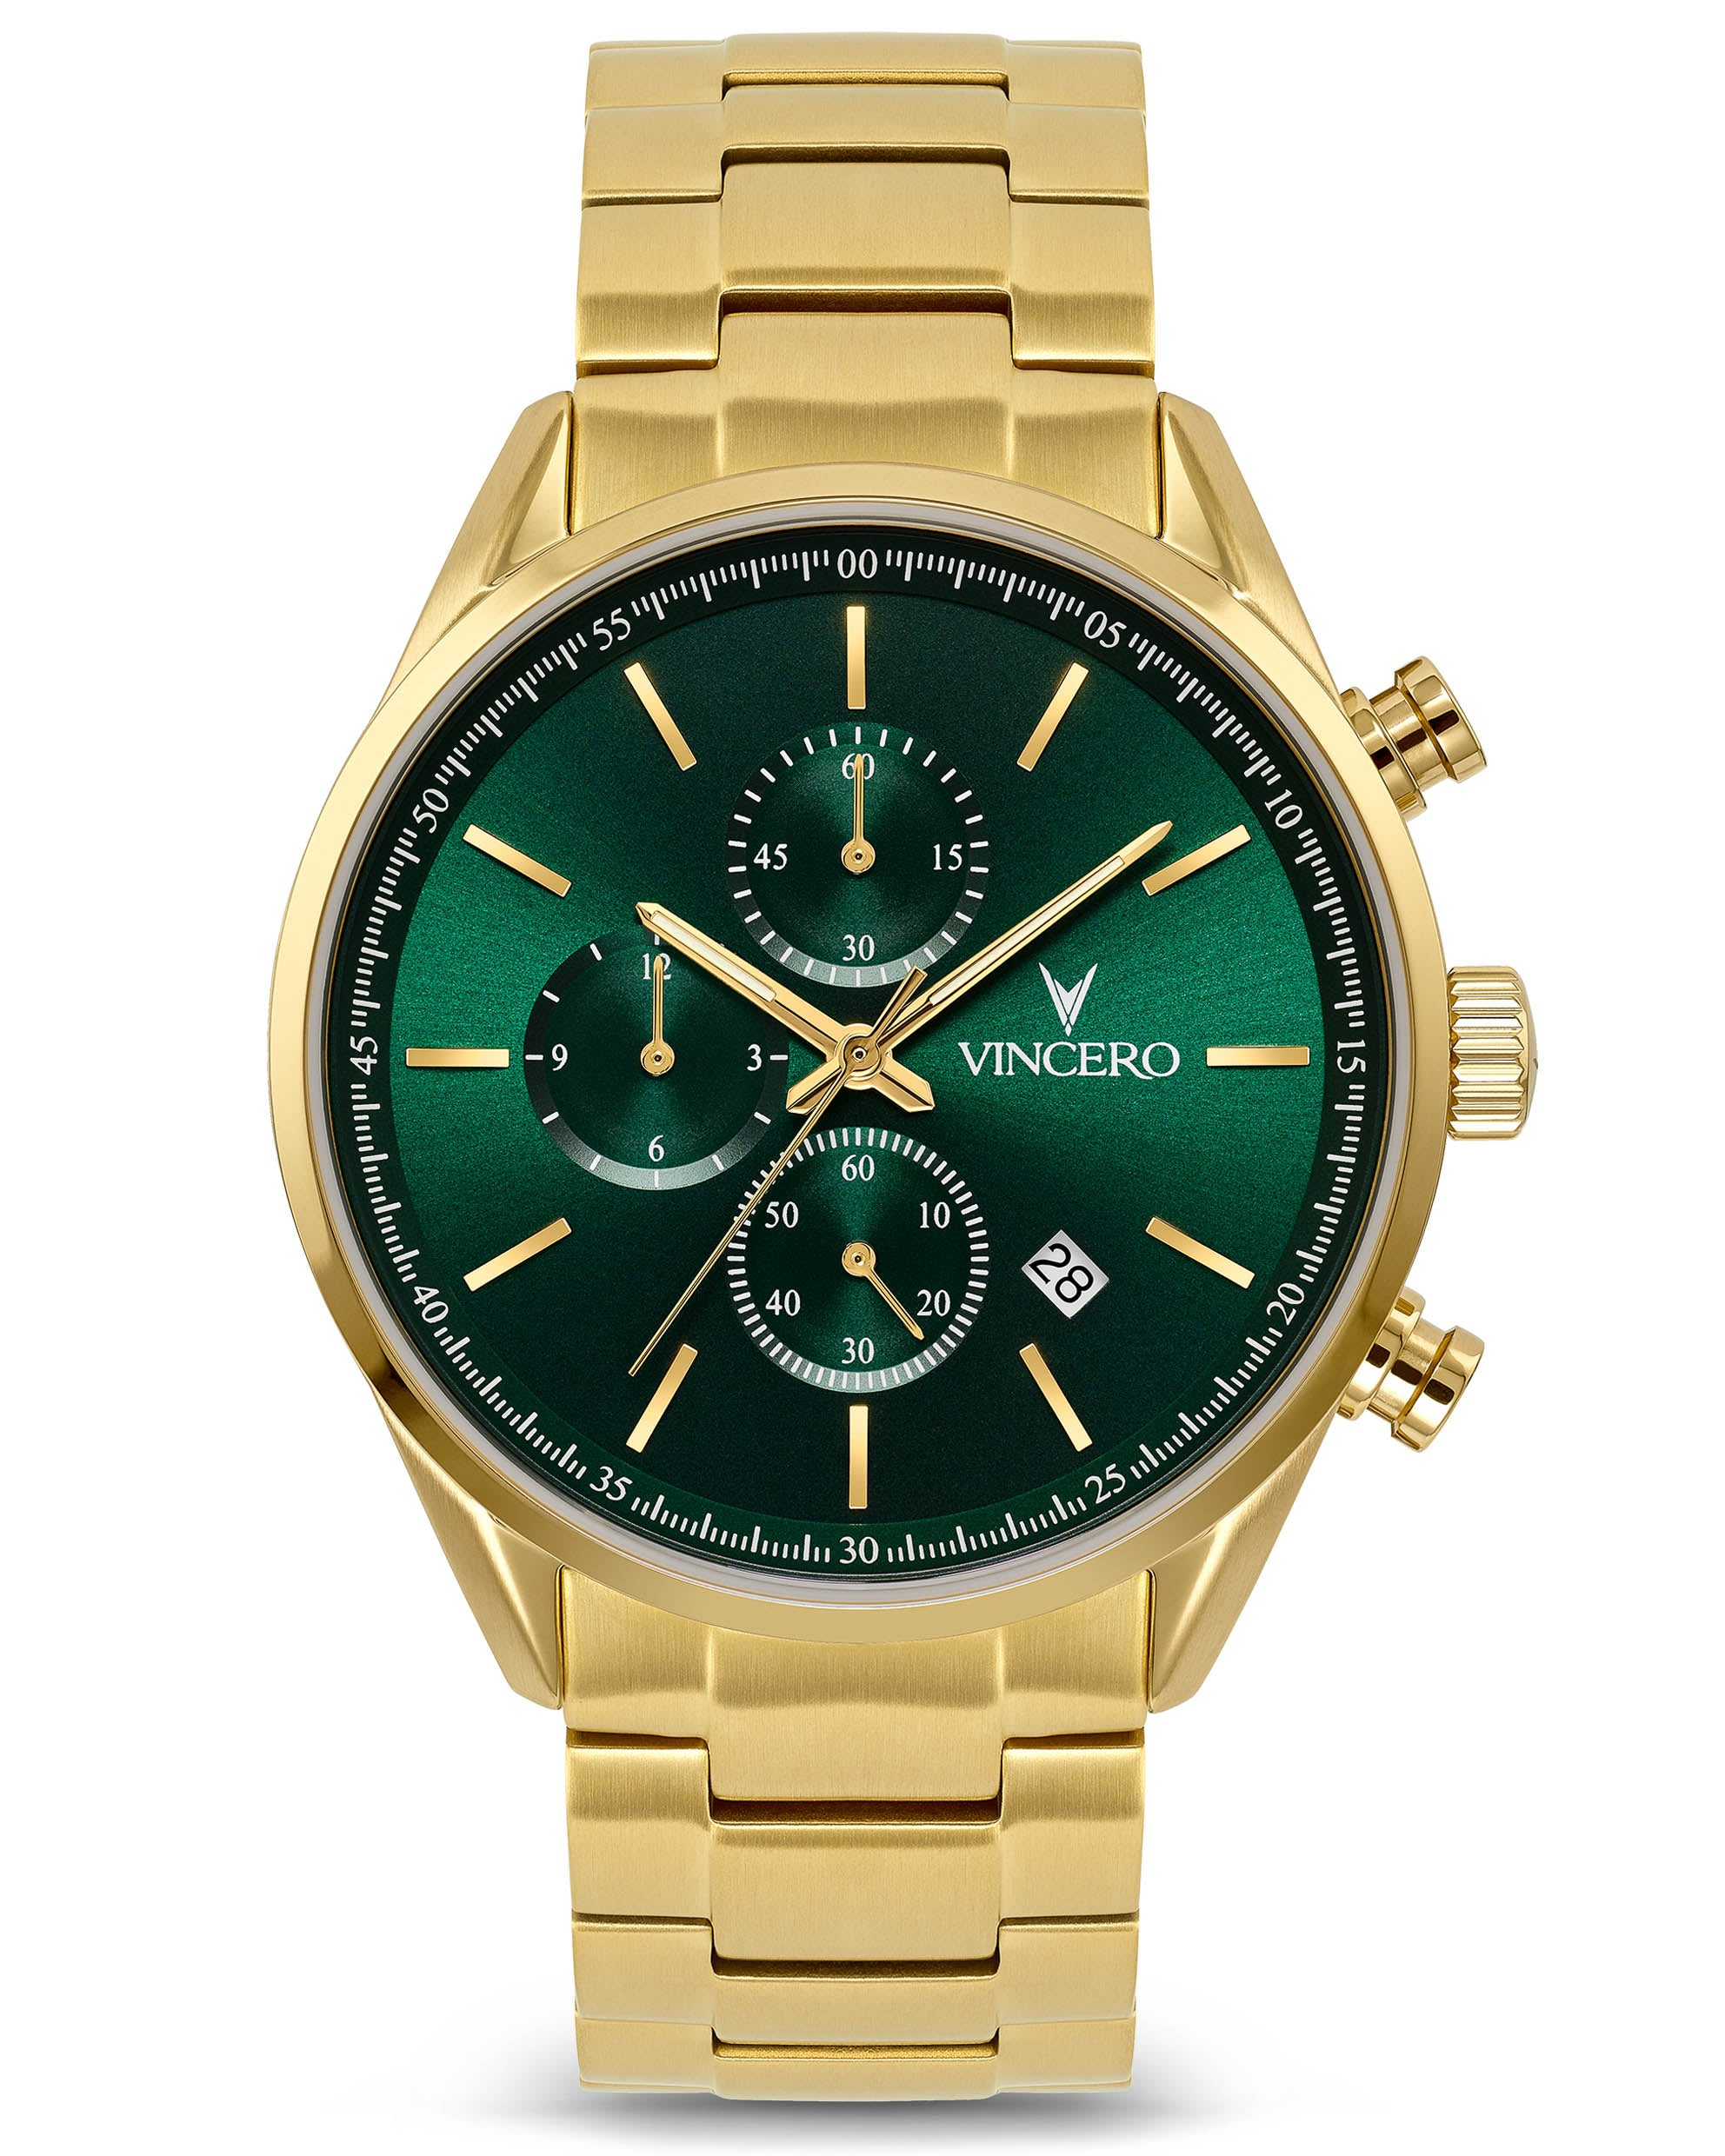 Chrono S 40mm Brown 316L Stainless Steel Strap Green Watch Face Gold Case Clasp Gold Accents